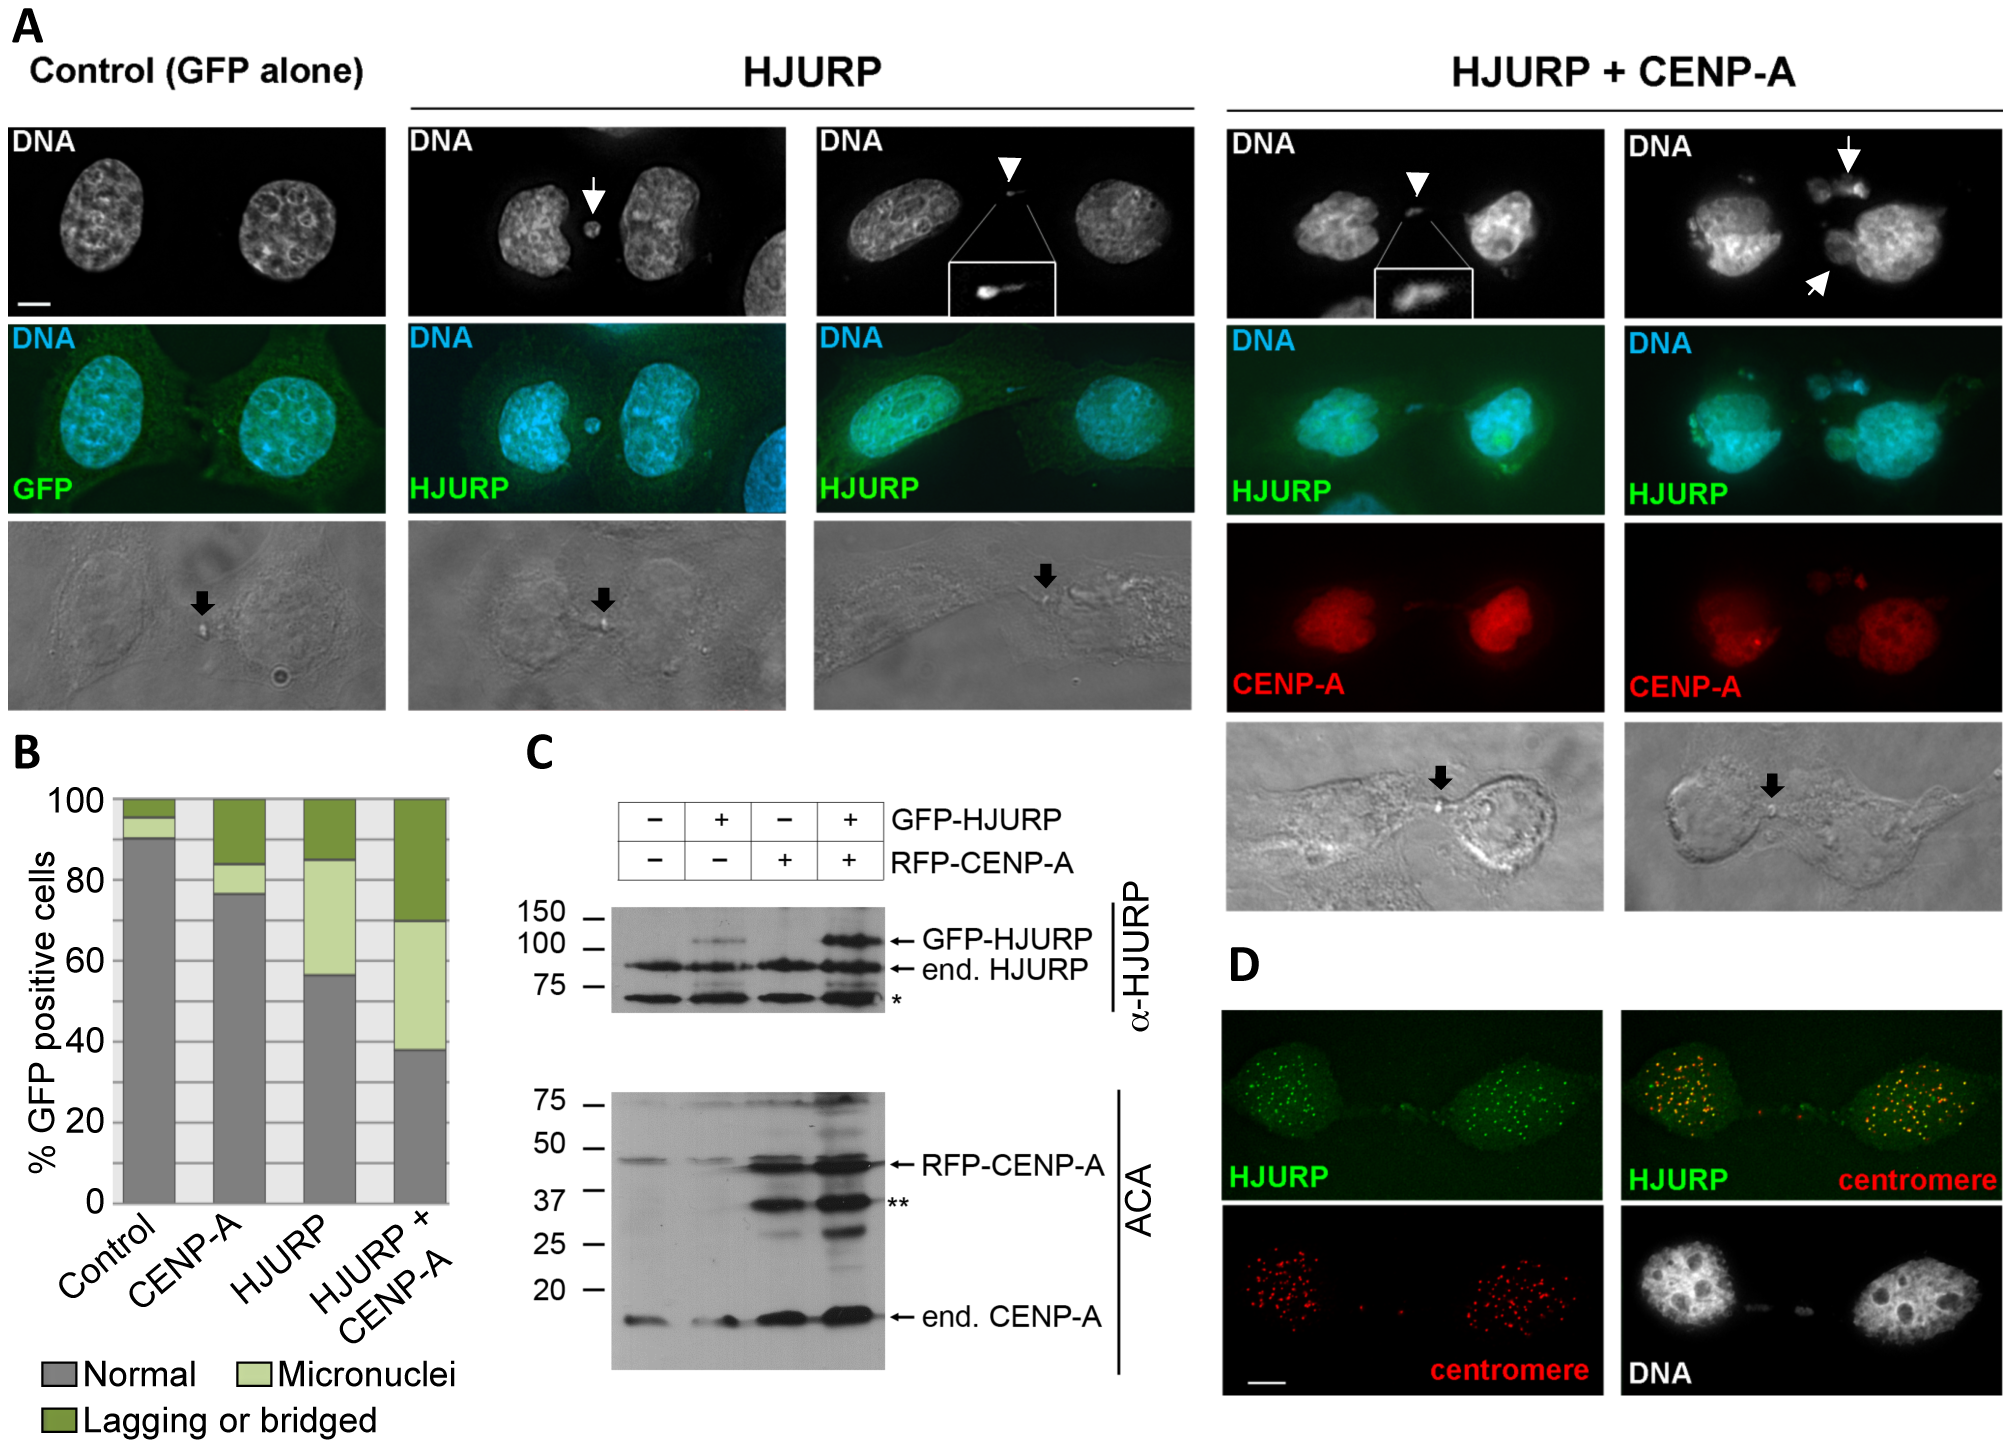 Chromosome segregation errors in human cells over-expressing of <i>HJURP</i> and <i>CENP-A.</i>